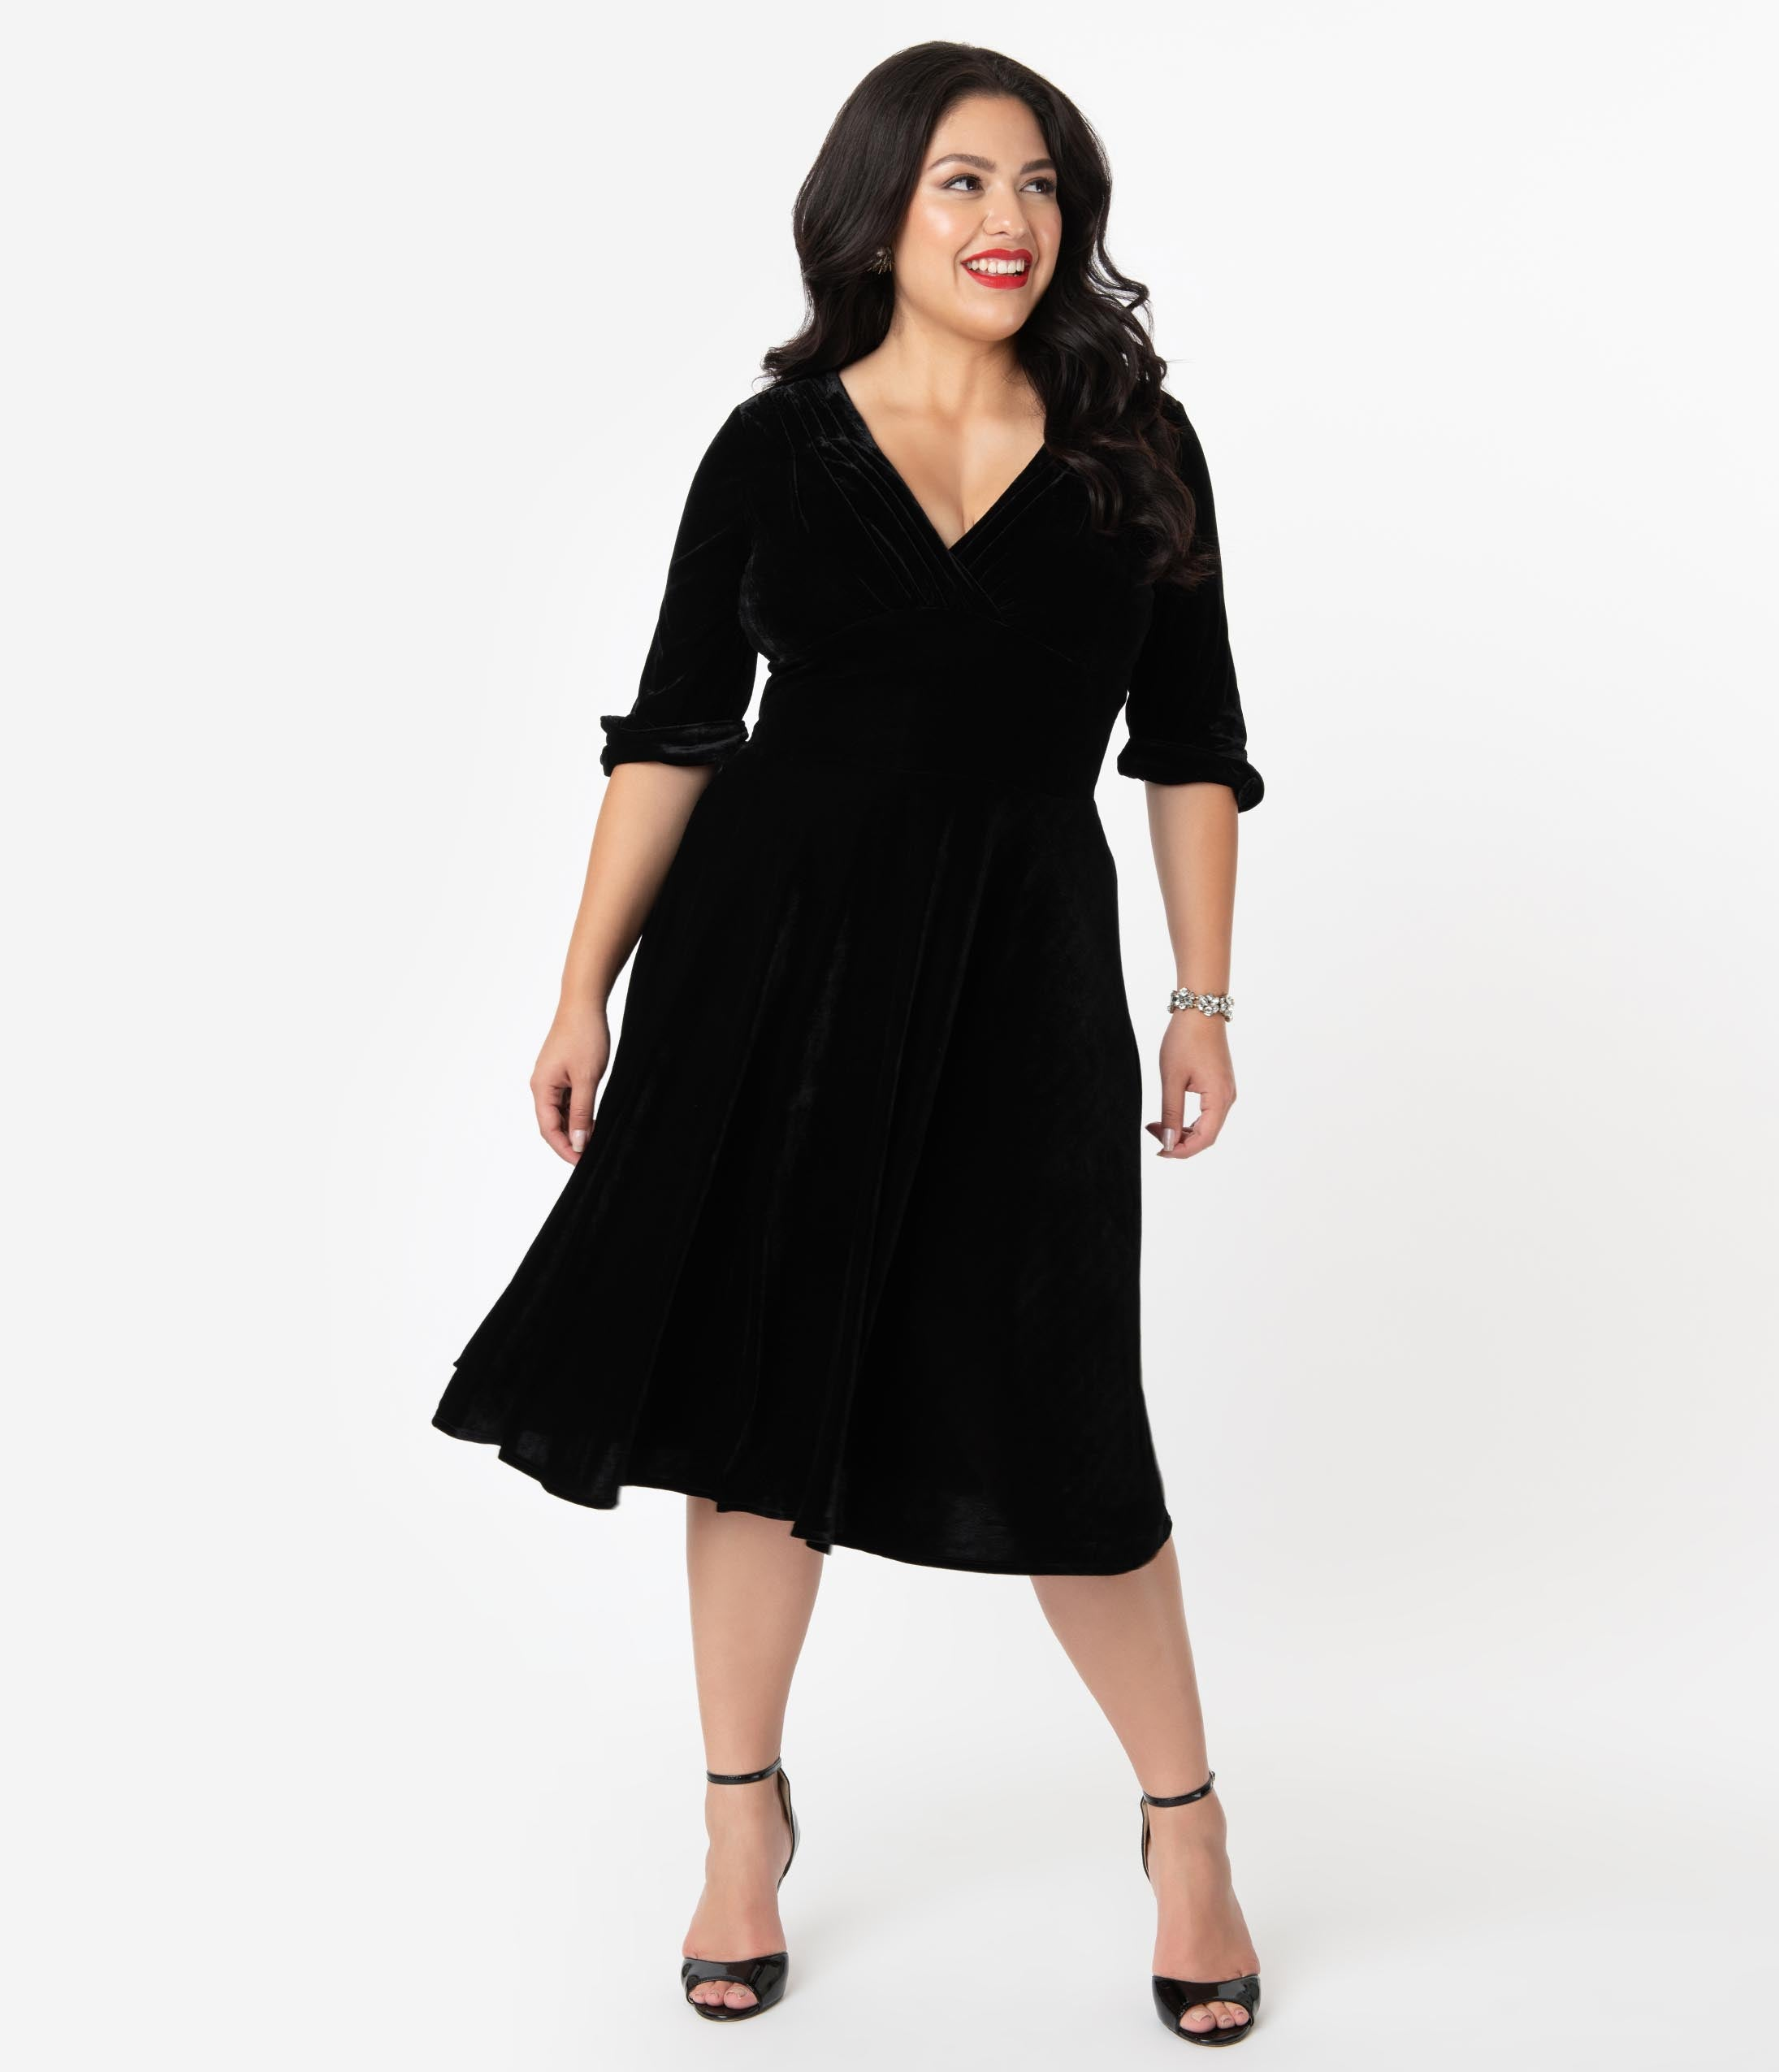 1950s Plus Size Dresses, Swing Dresses Unique Vintage Plus Size 1950S Black Velvet Delores Swing Dress With Sleeves $98.00 AT vintagedancer.com